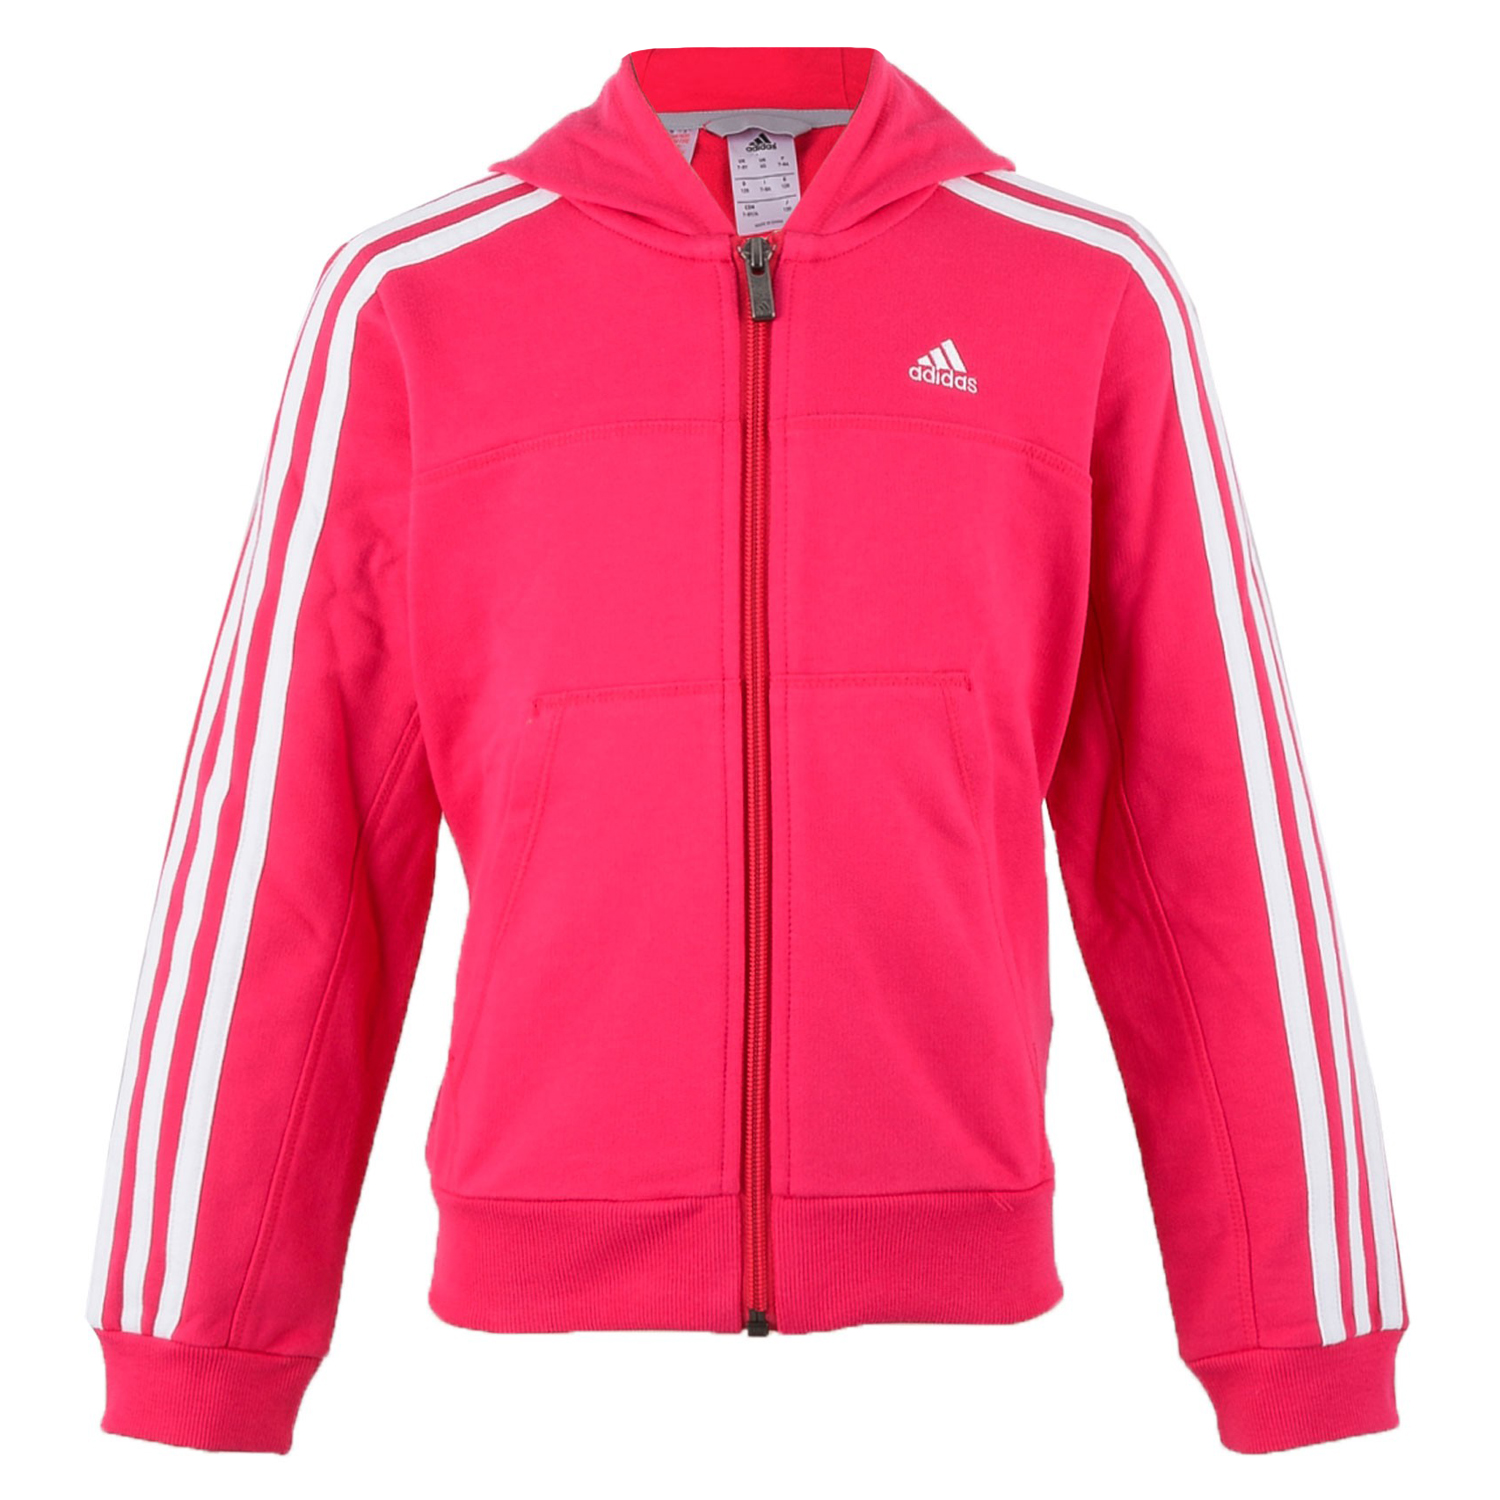 adidas Performance Girls Full Zip Jumper Sweater Sweatshirt Jacket ...